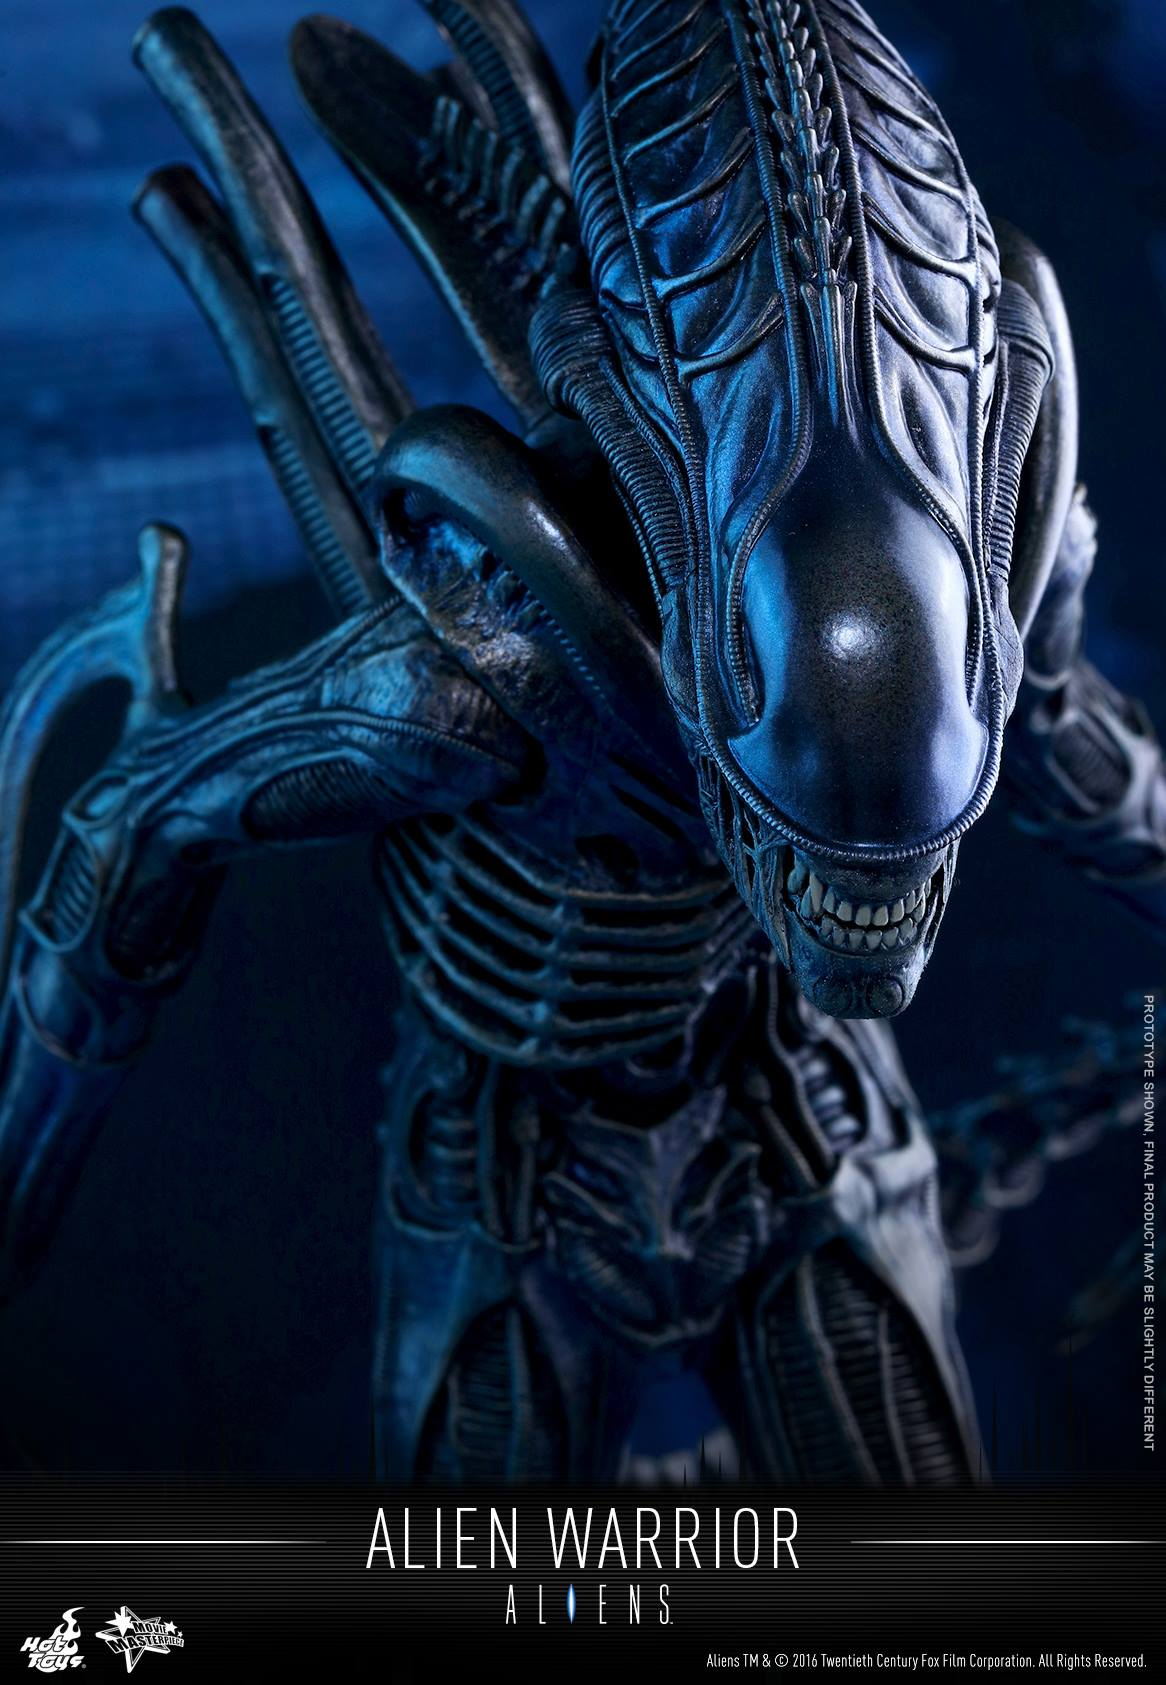 Pre-Order Hot Toys Alien Warrior Sixth Scale Figure